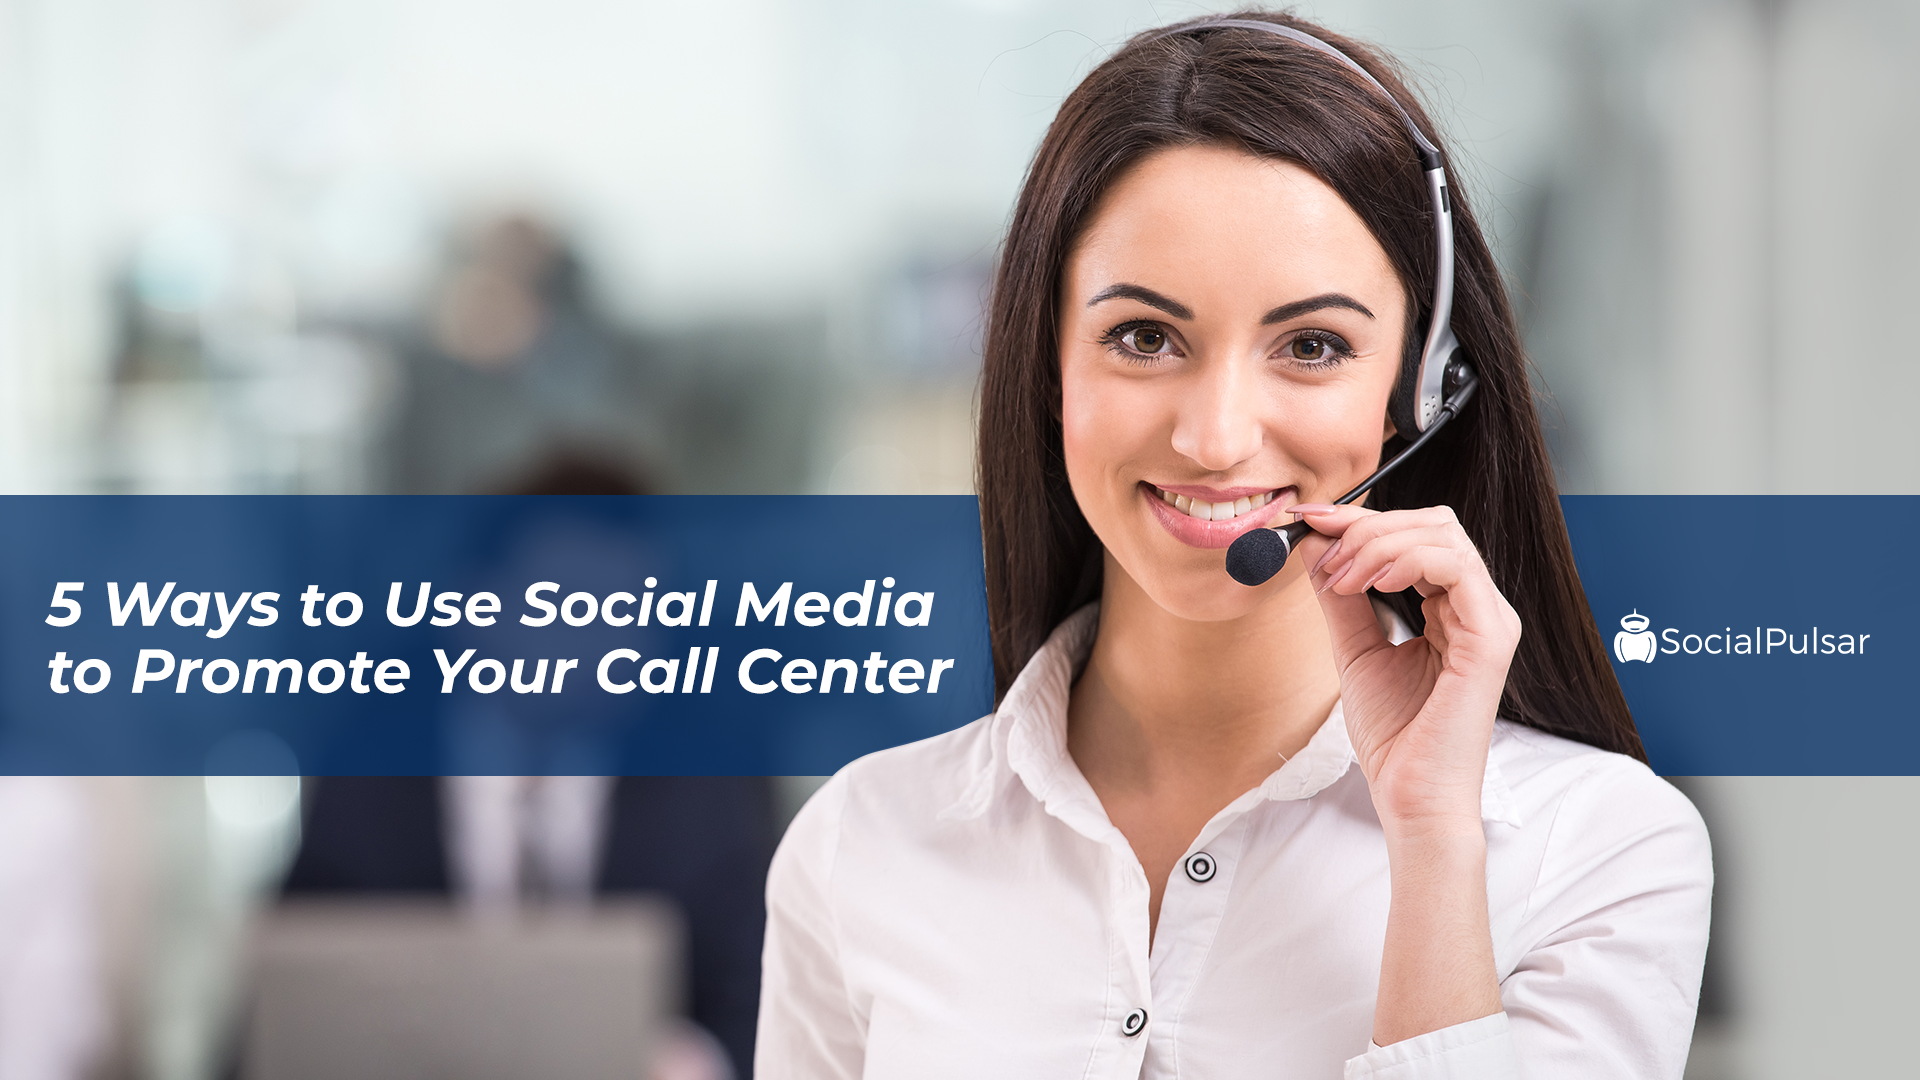 5 Ways to Use Social Media to Promote Your Call Center